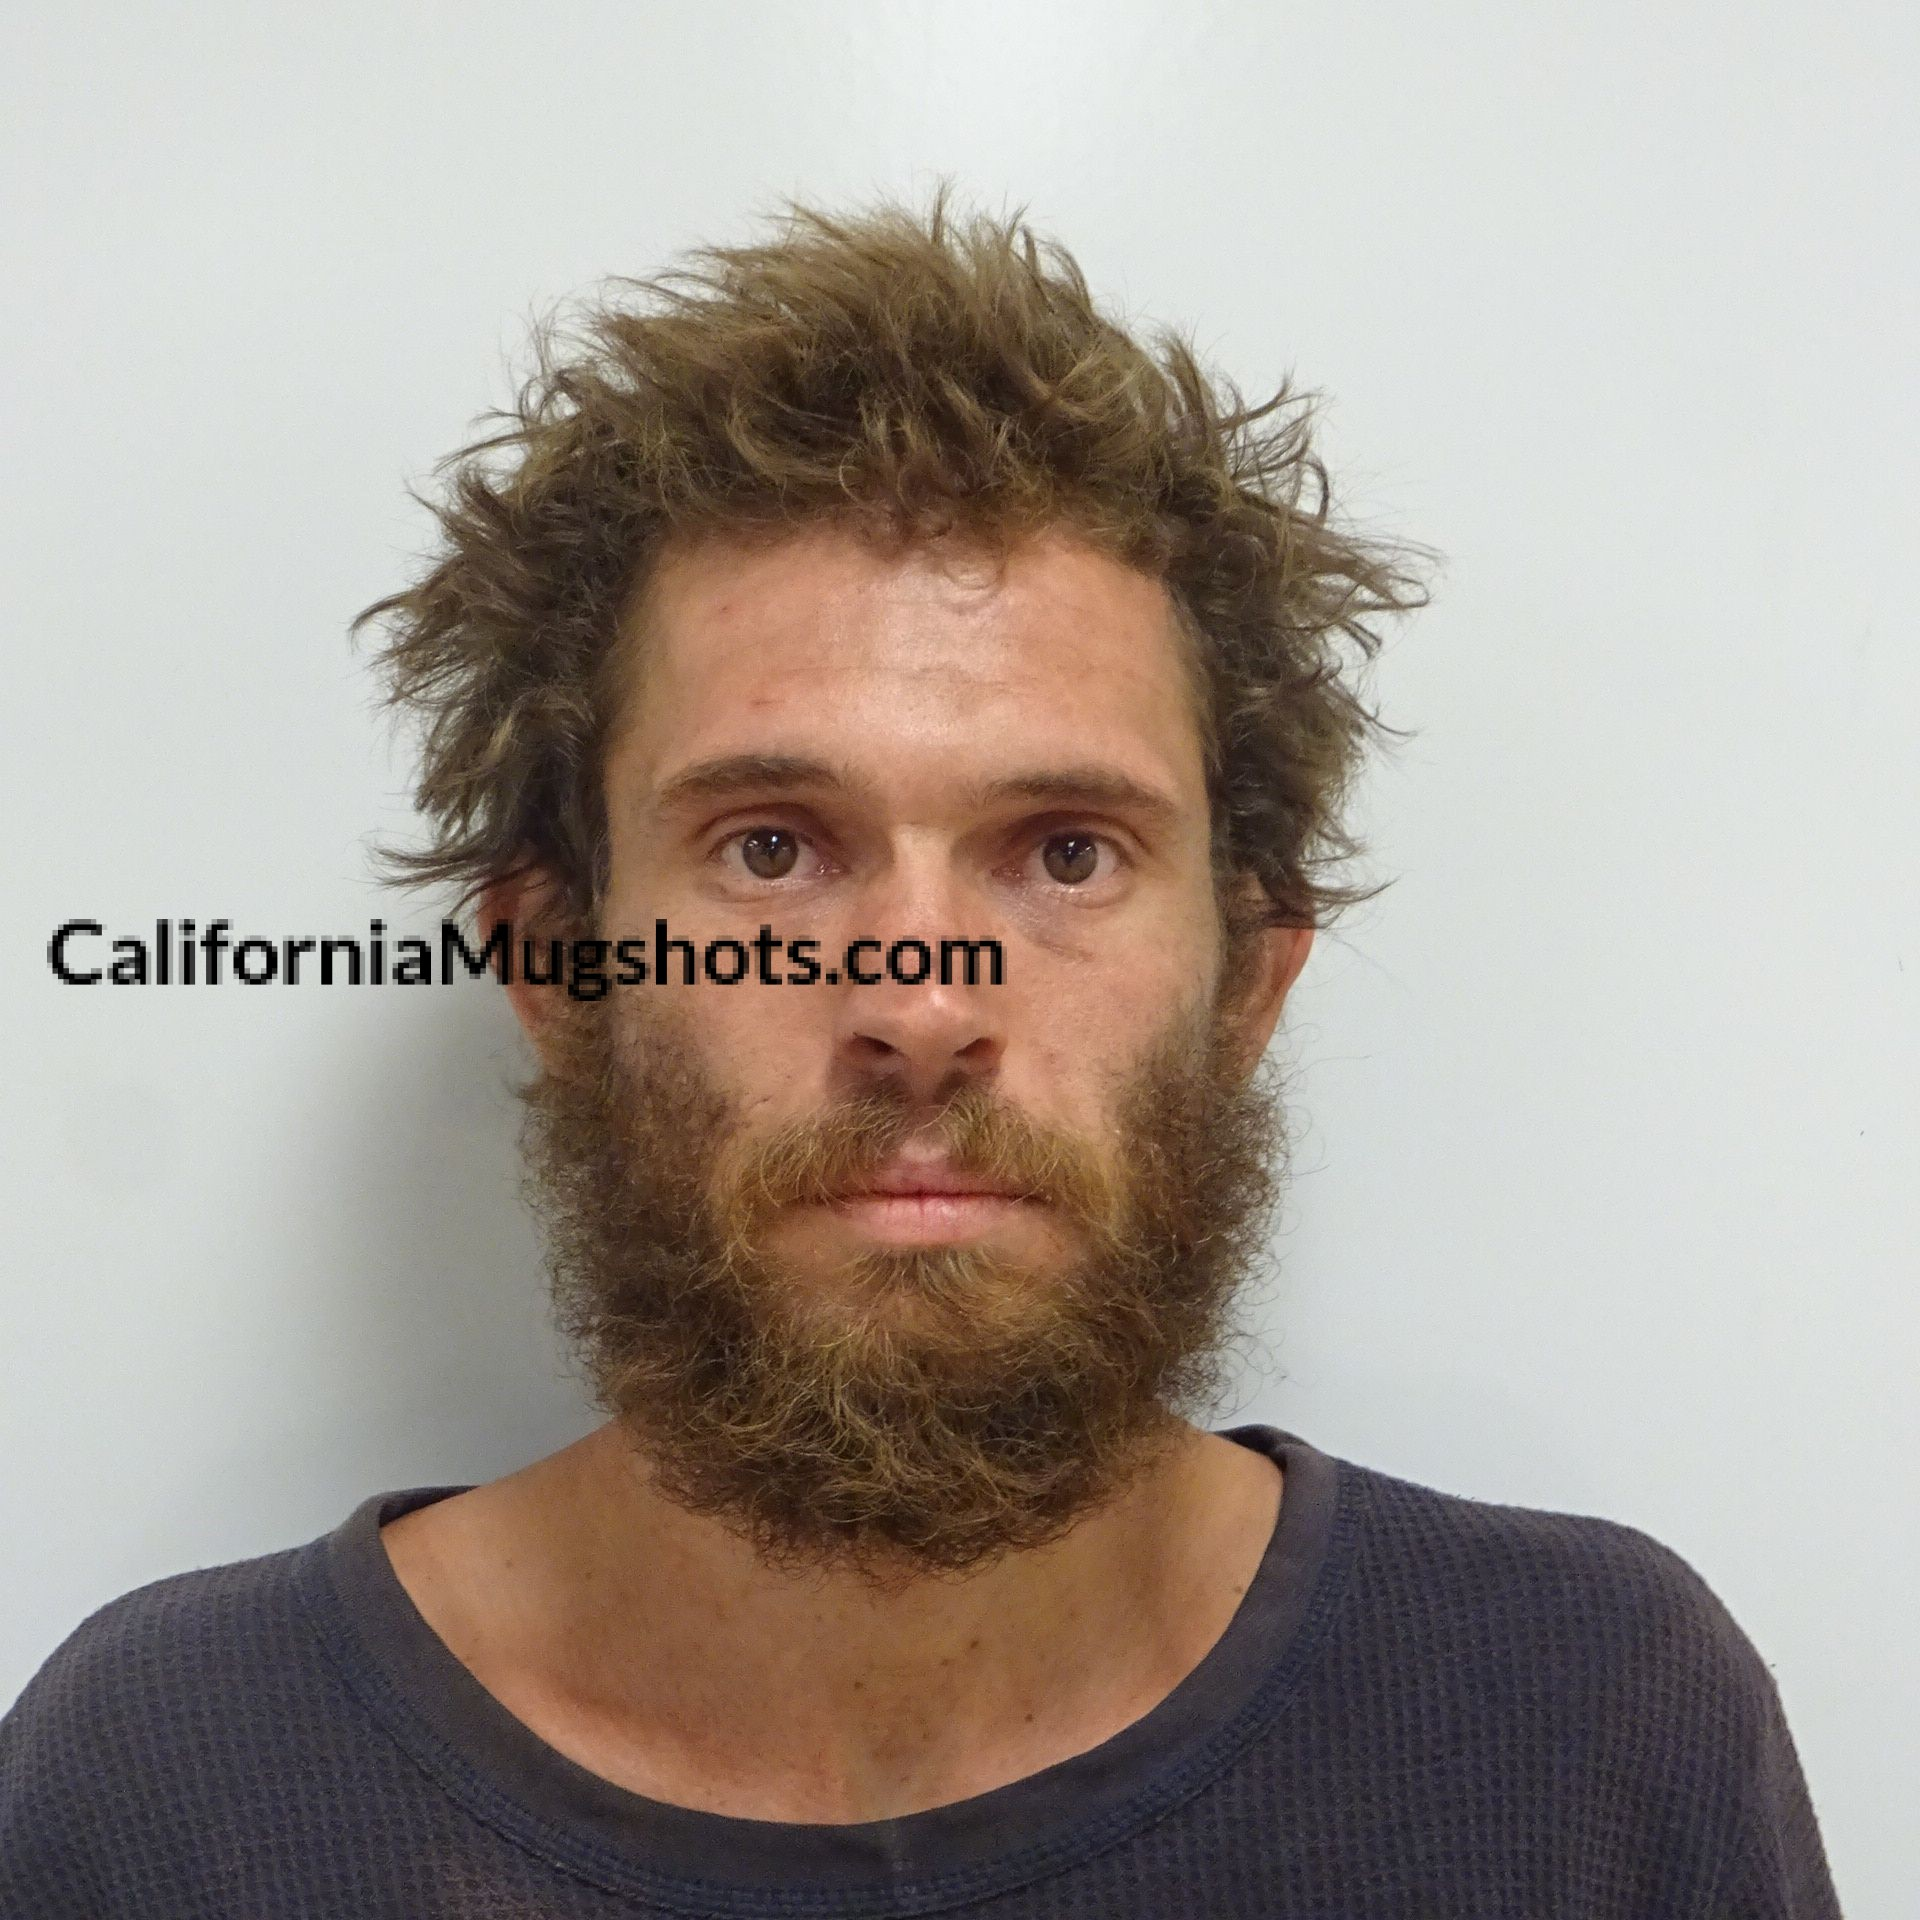 Shane Michael Smith arrested in Lake County,CA